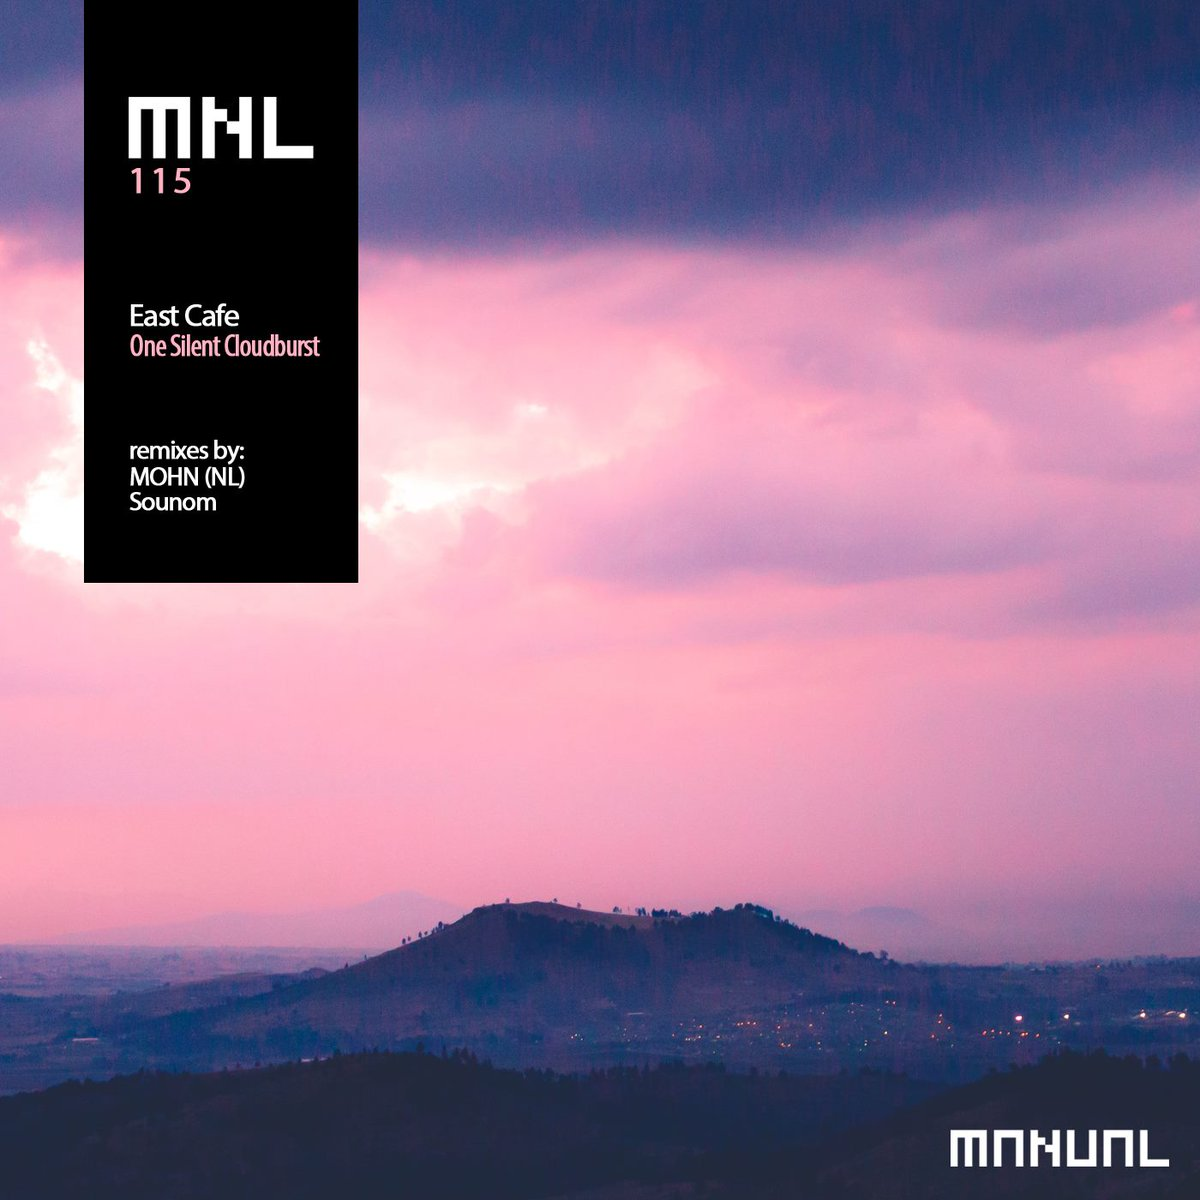 Remix Releaseday!  https:// manual-music.lnk.to/MNL115  &nbsp;   choose yr own musicportal to support artist :D @manualmusic #progressive <br>http://pic.twitter.com/NCnibkvpzg